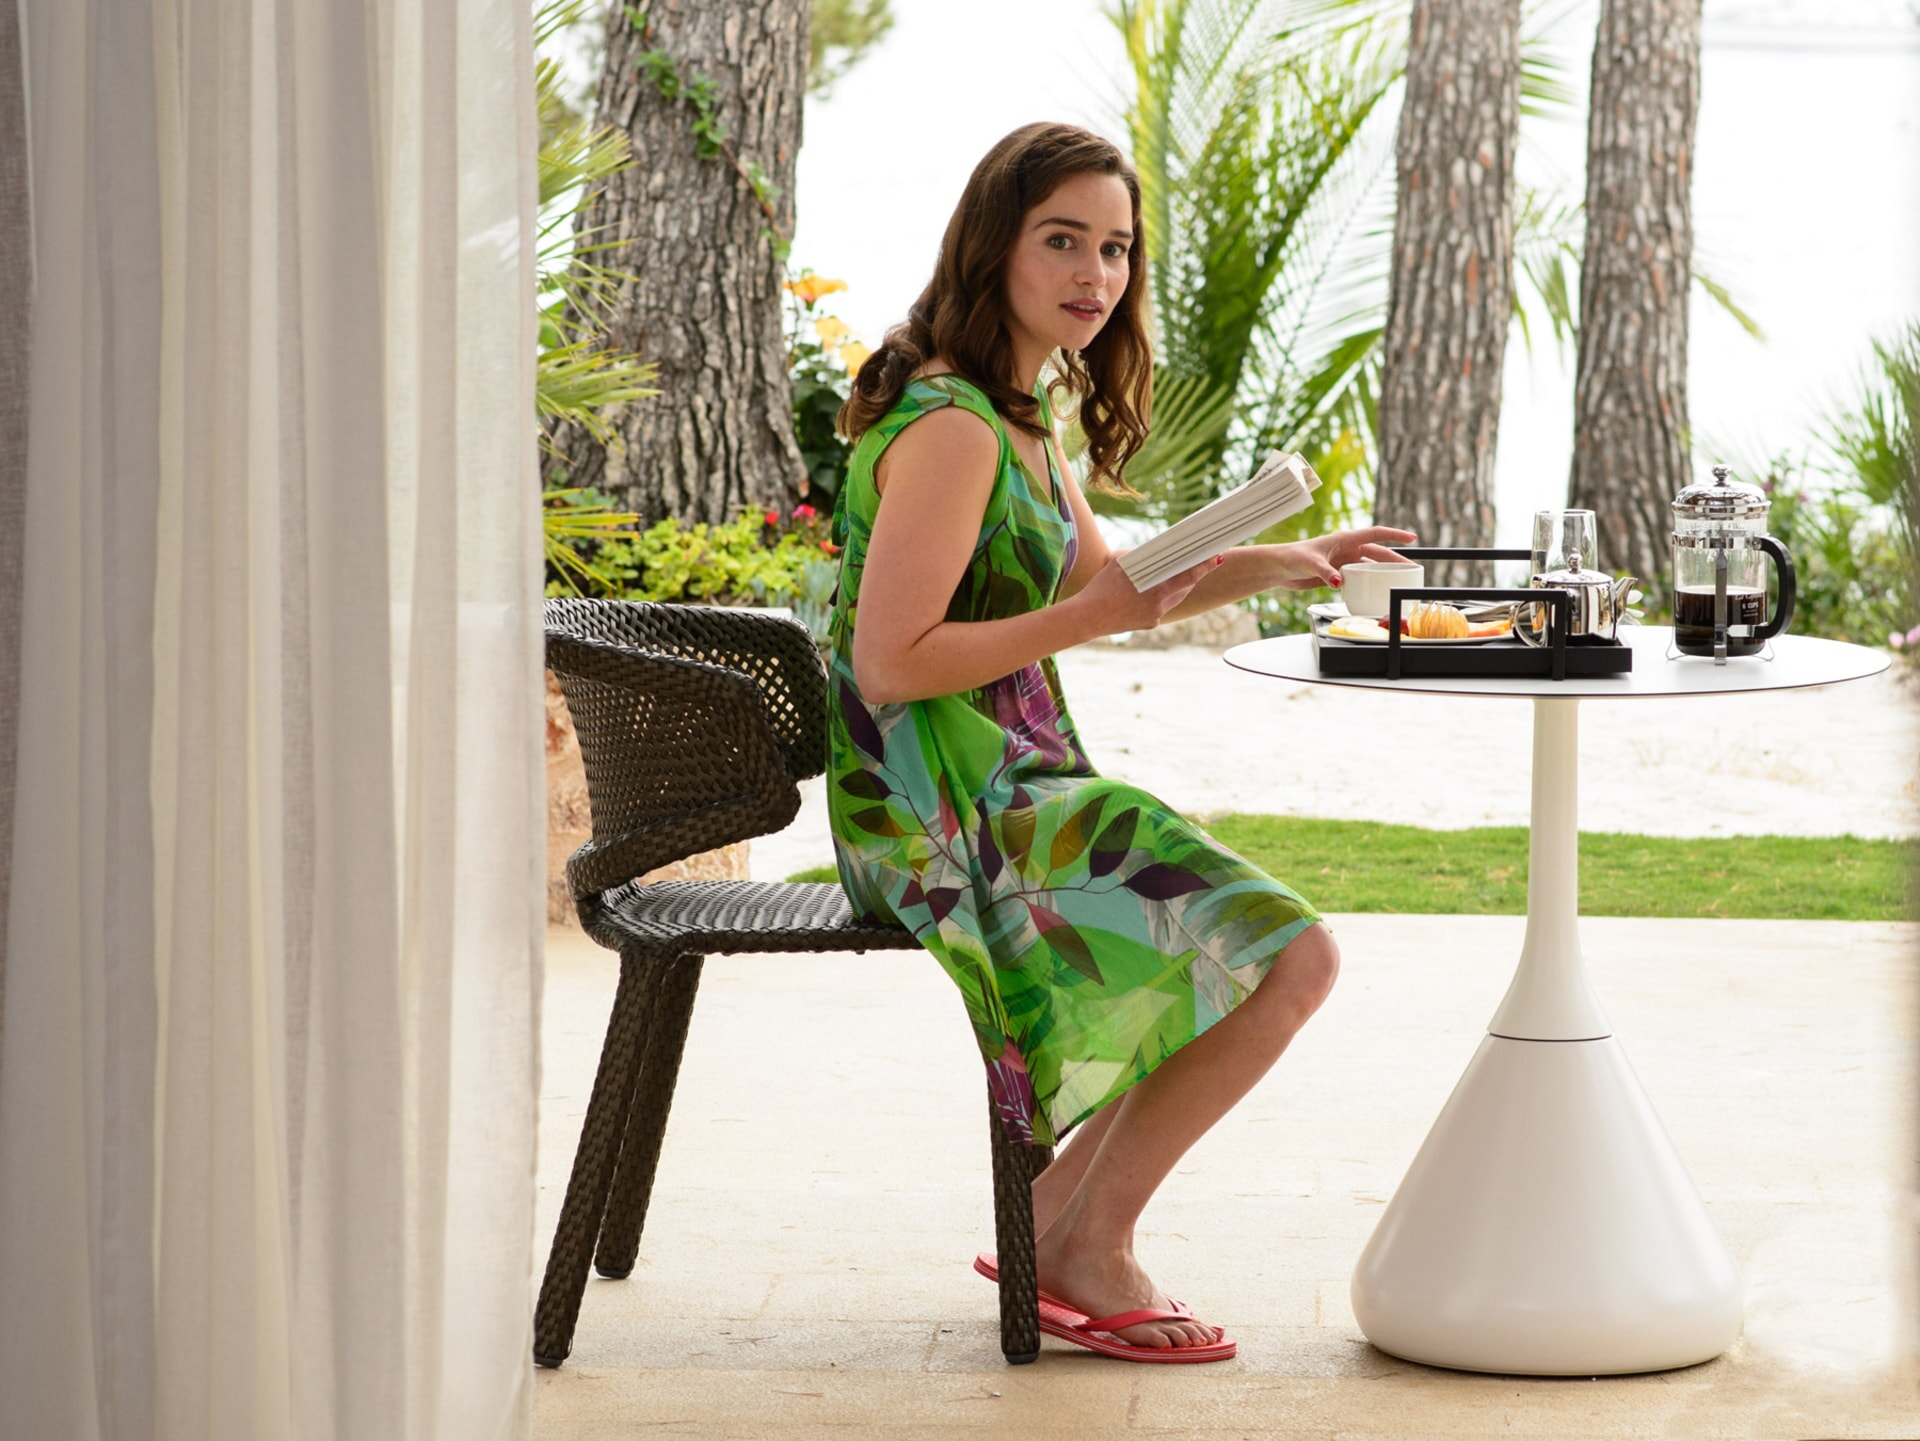 EMILIA CLARKE as Lou Clark eating breakfast outdoors in a tropical setting.